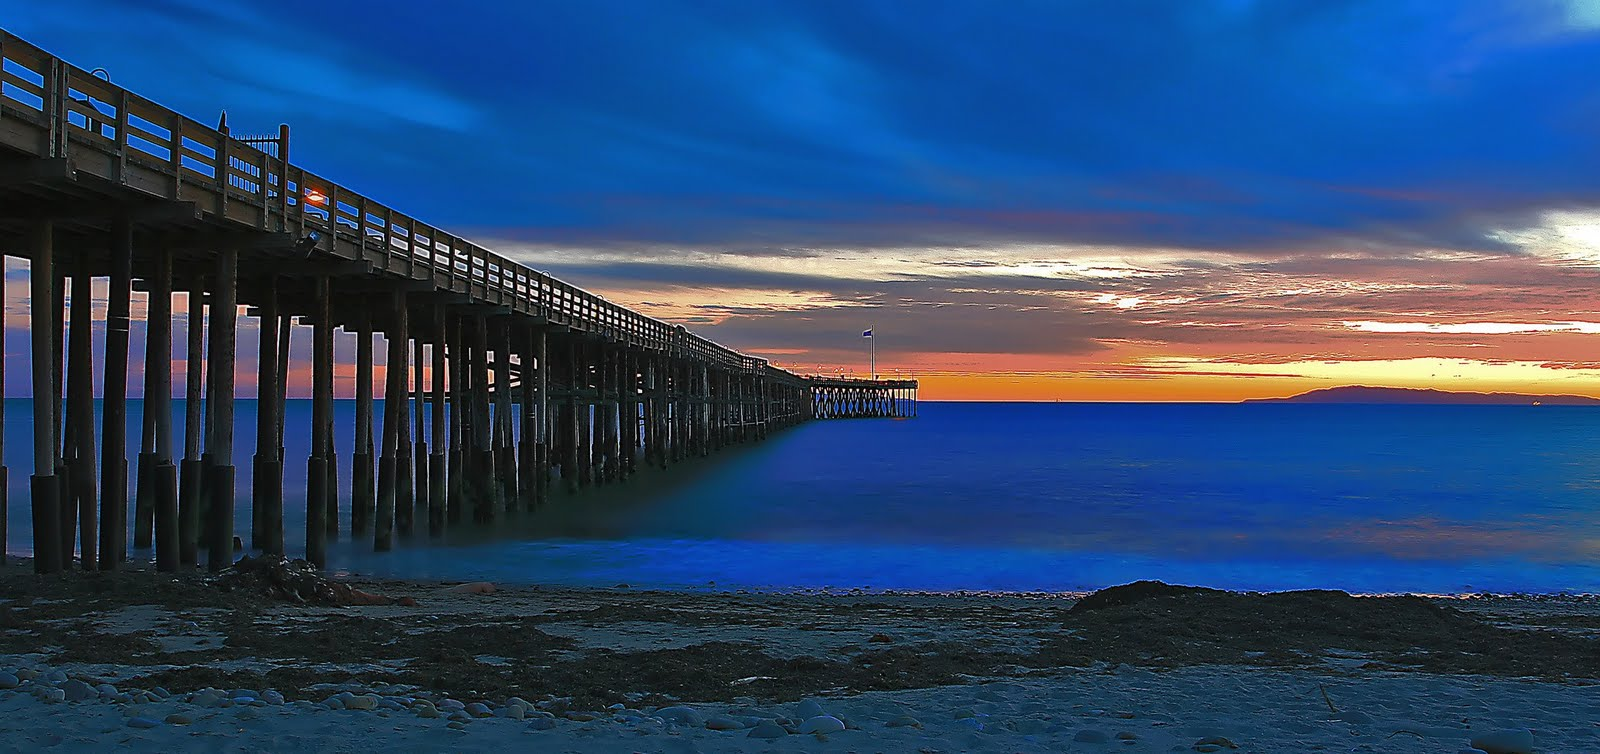 Ventura Beach CA | California Beaches and Surfing